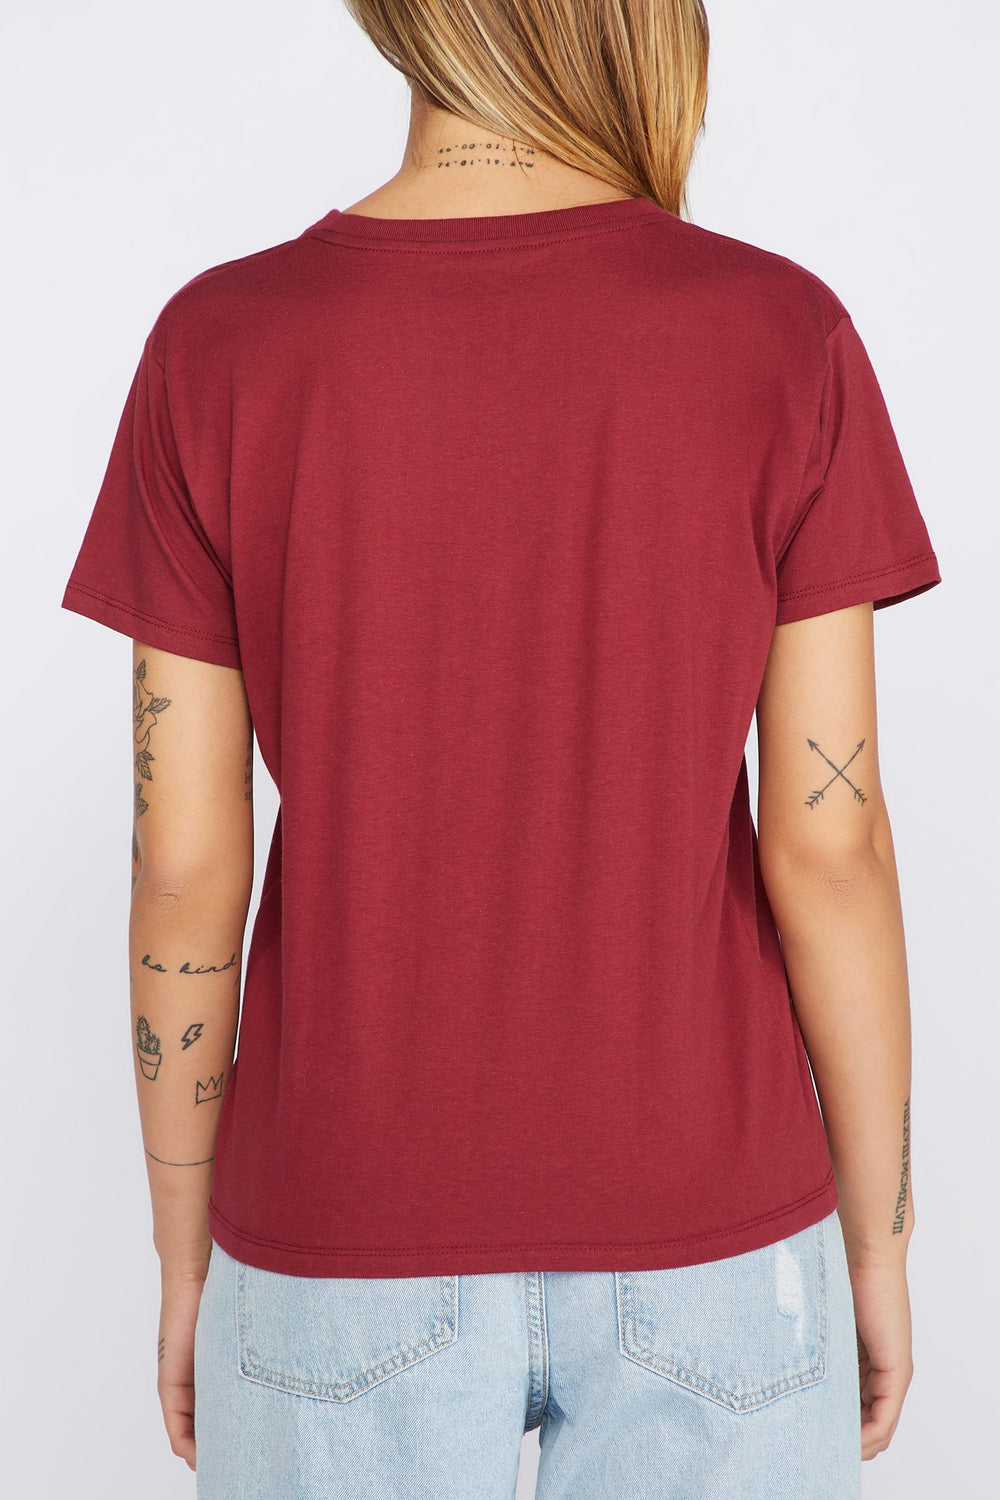 Zoo York Womens Rose Gold Logo T-Shirt Burgundy